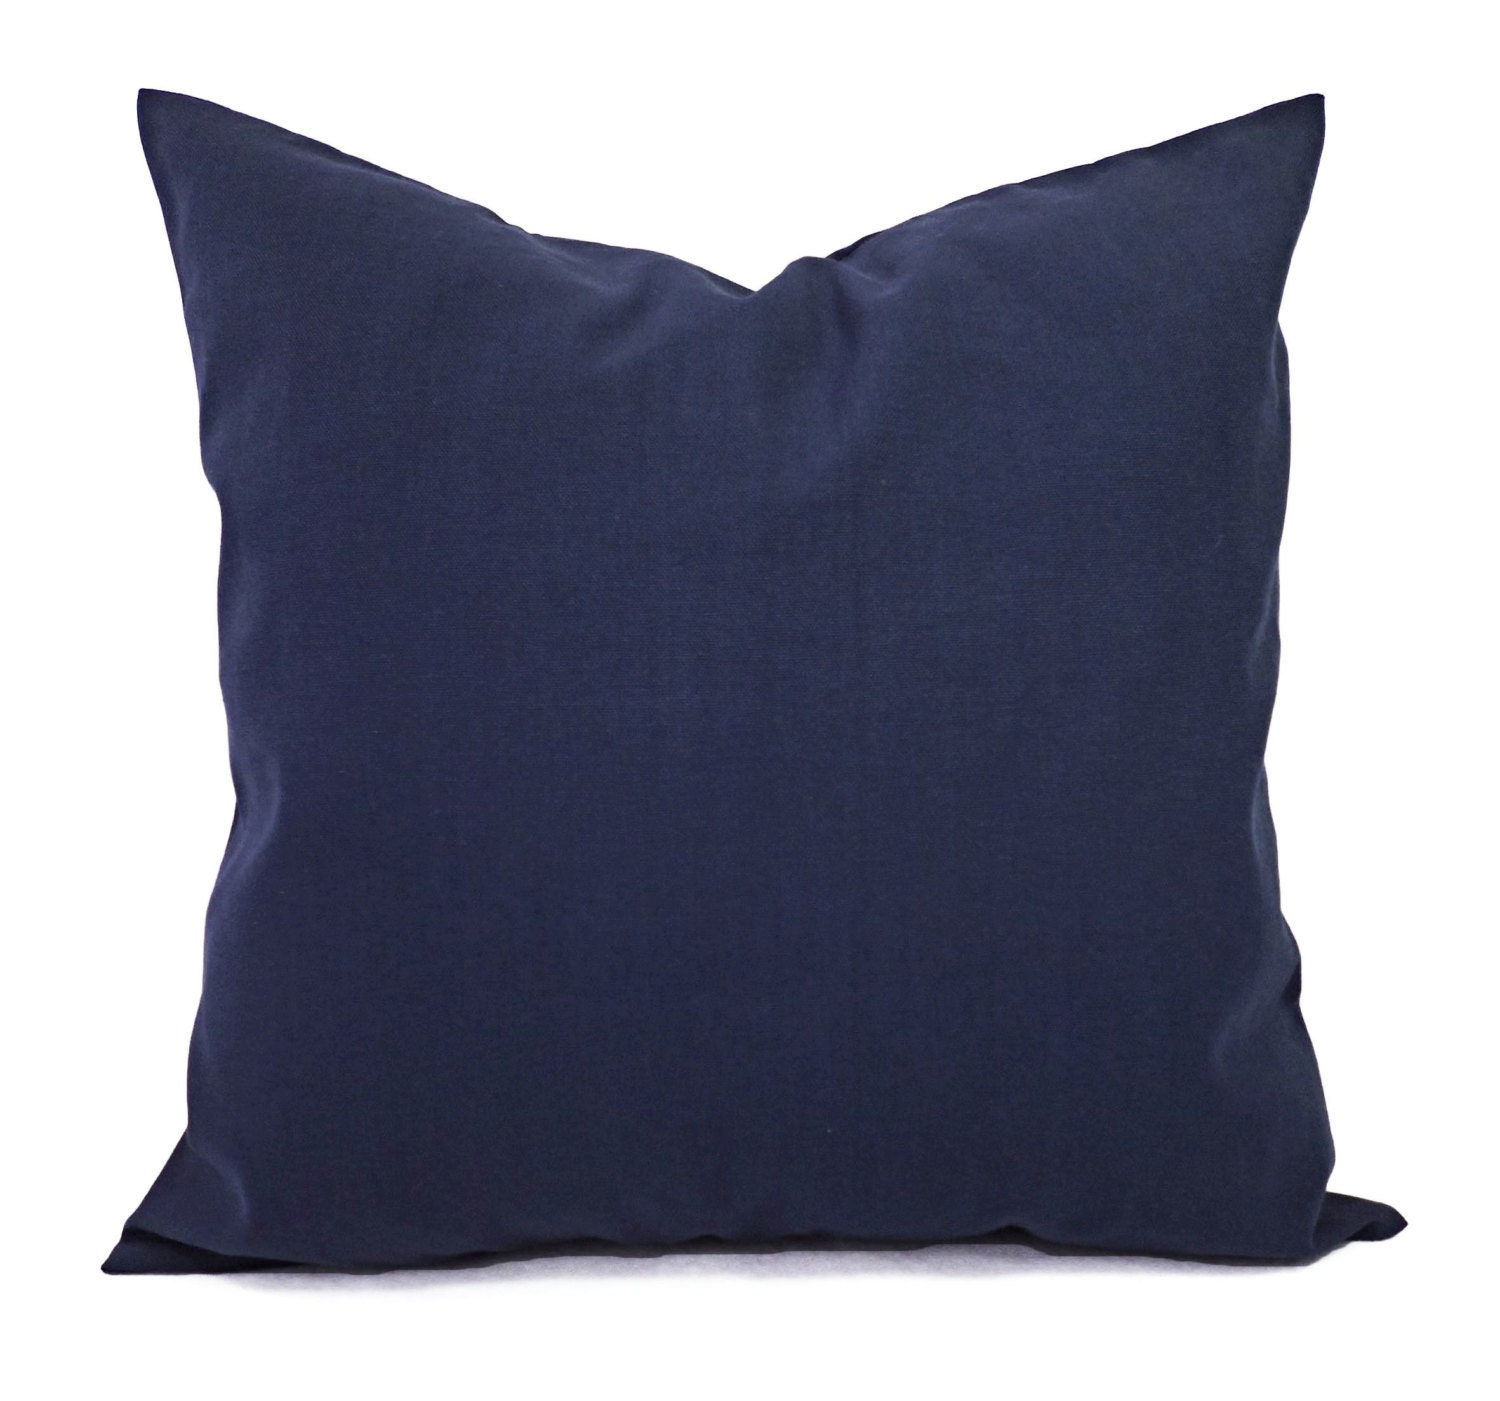 Navy Blue Throw Pillow Covers : Two Solid Navy Throw Pillow Covers Navy Couch Pillow Covers